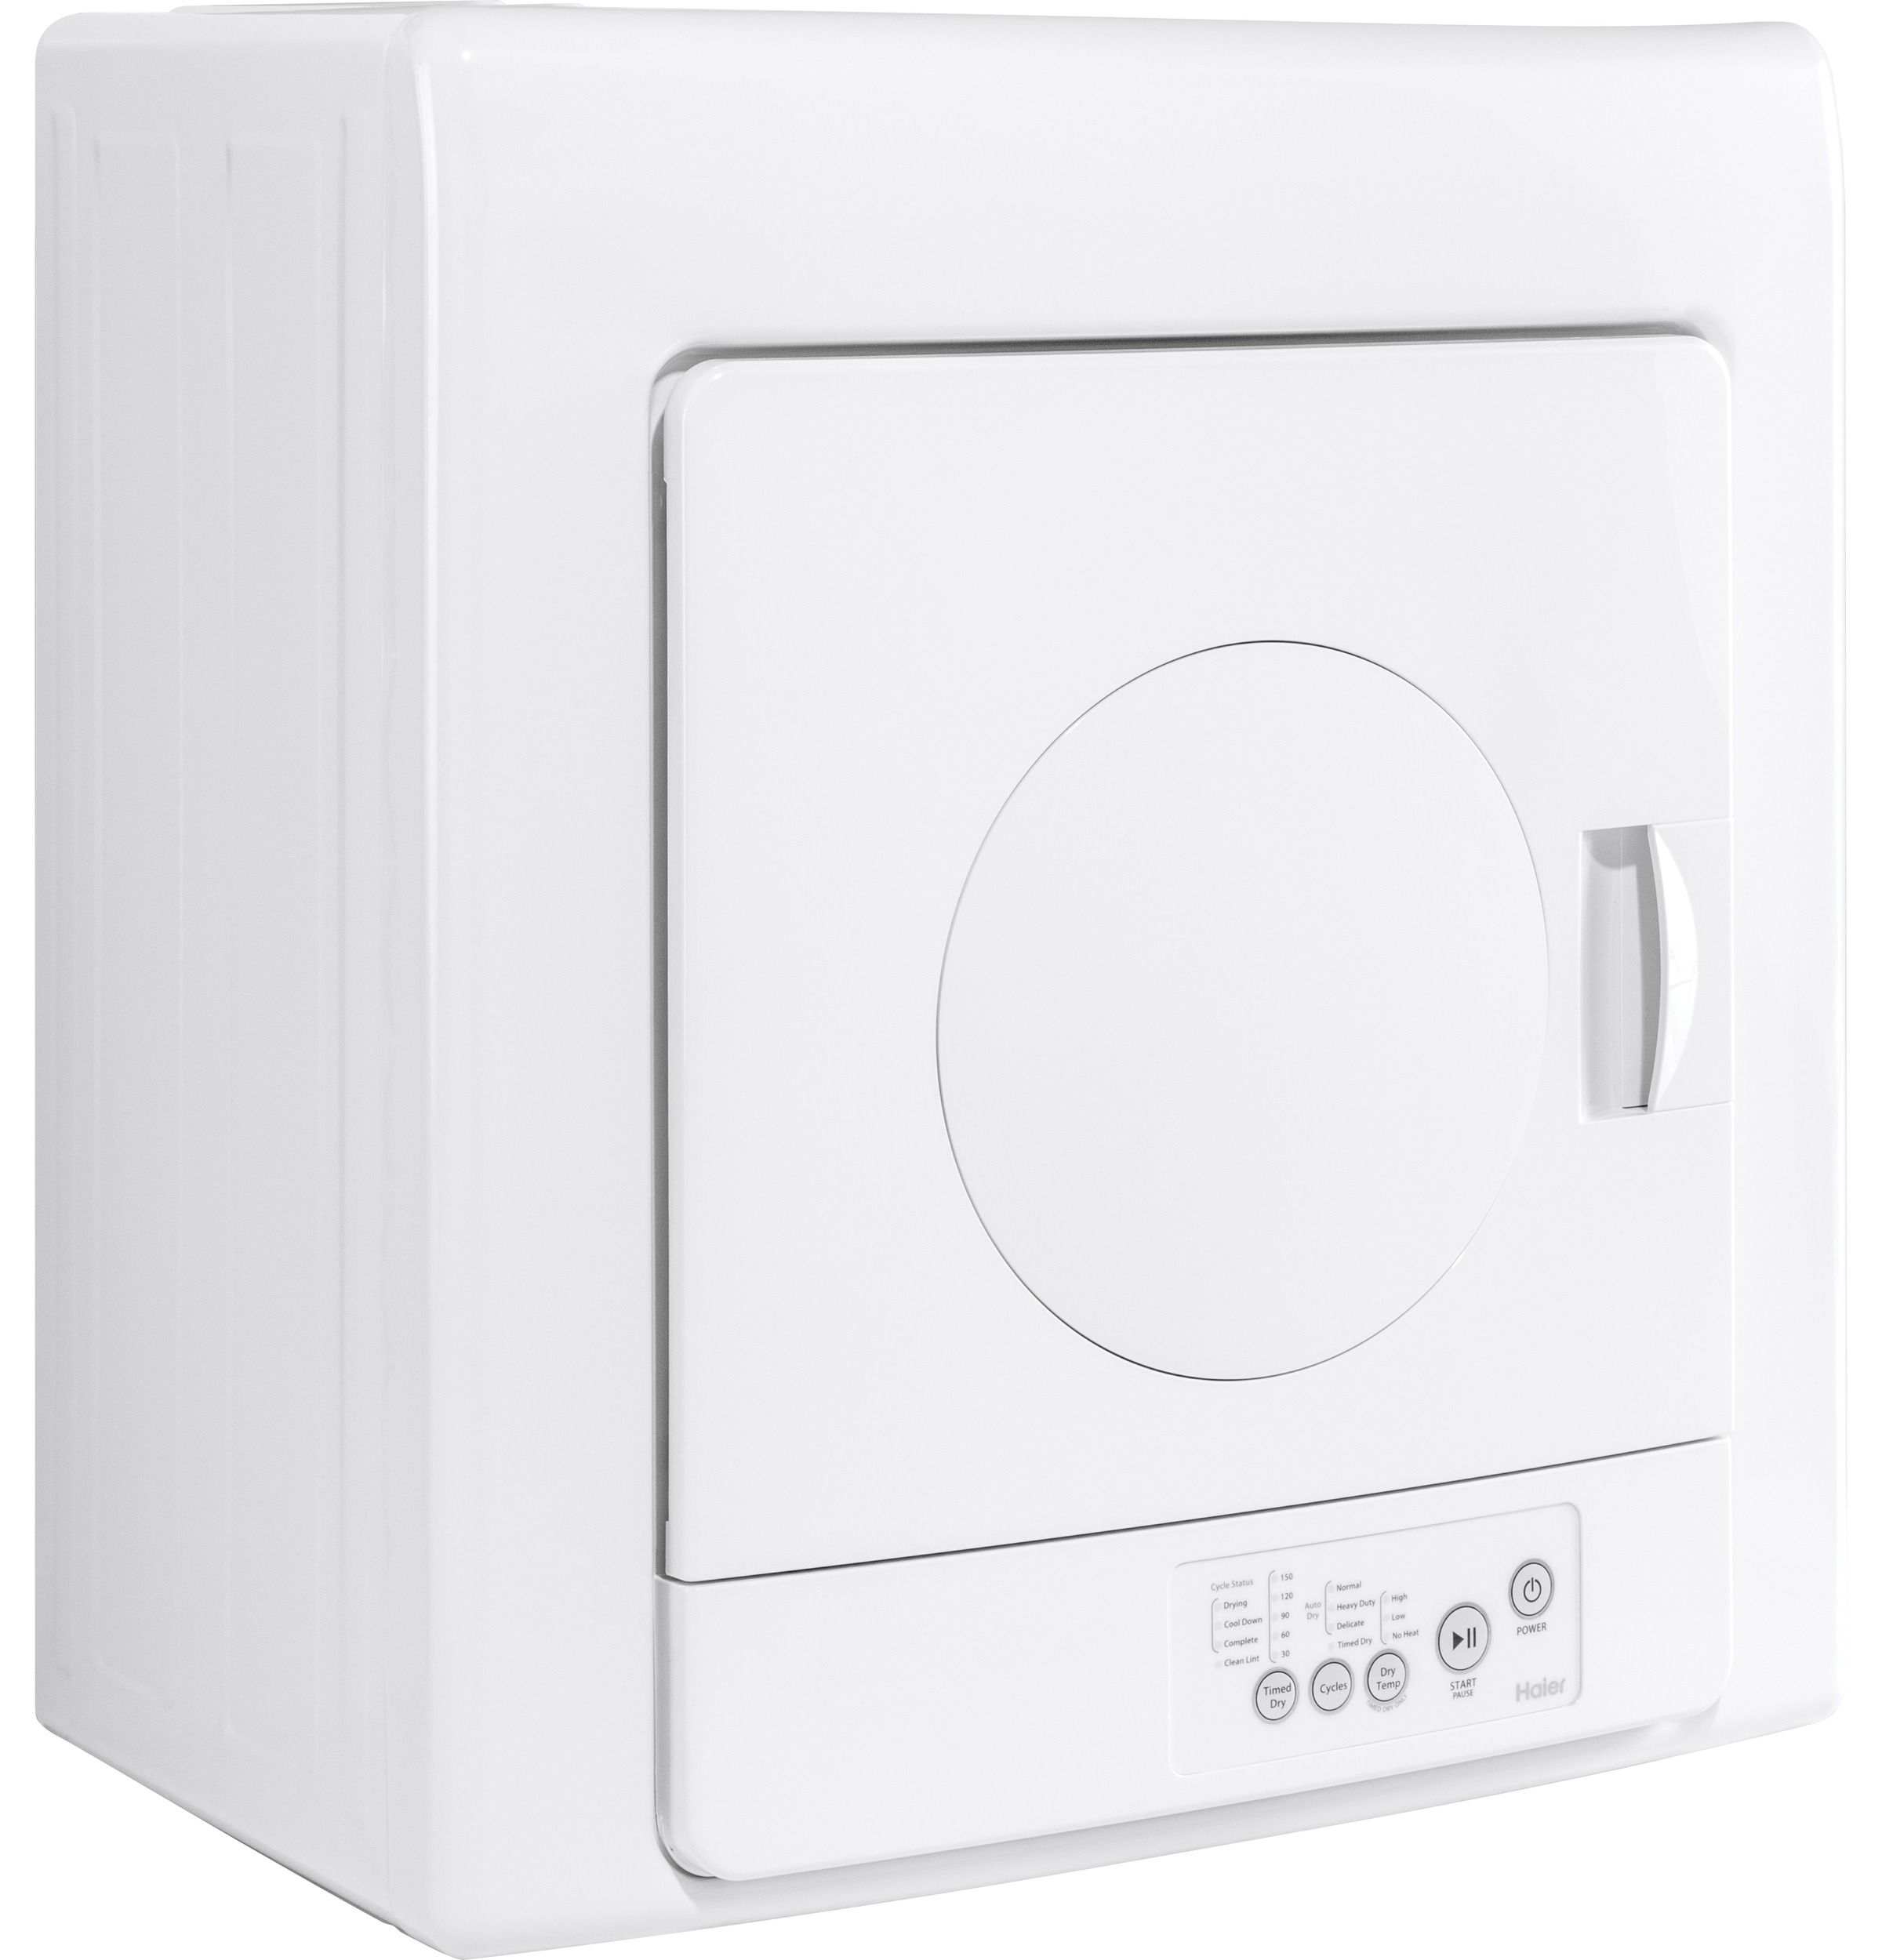 Model: HLP141E   2.6 cu. ft. Portable Electric Vented Dryer